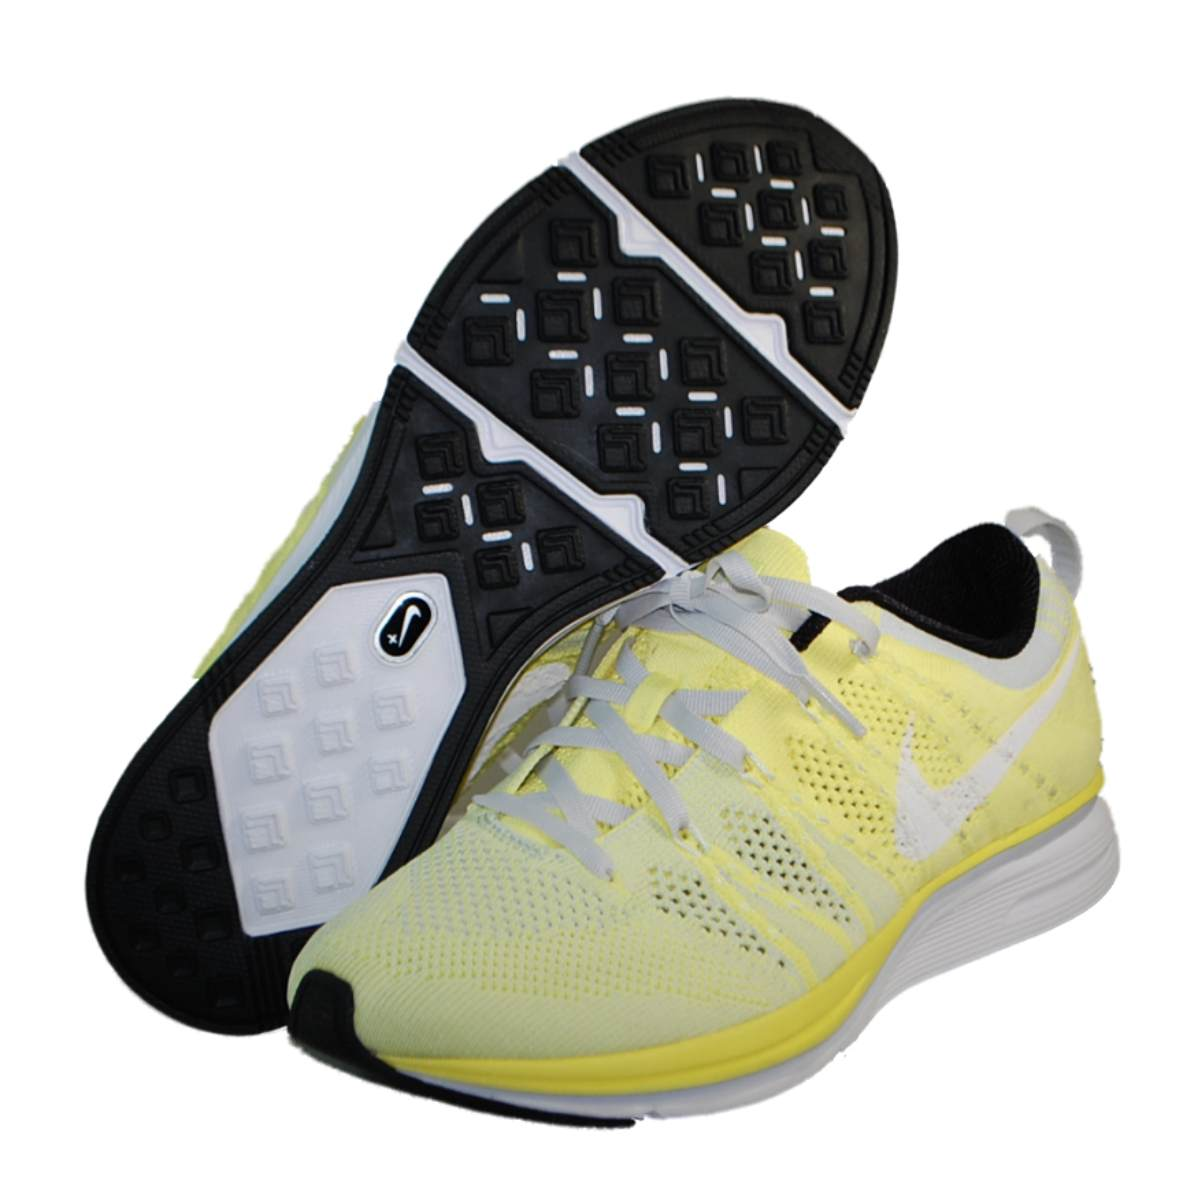 separation shoes 40a3d f0cff nike free 5.0 2014 nz toddler 10 shoes